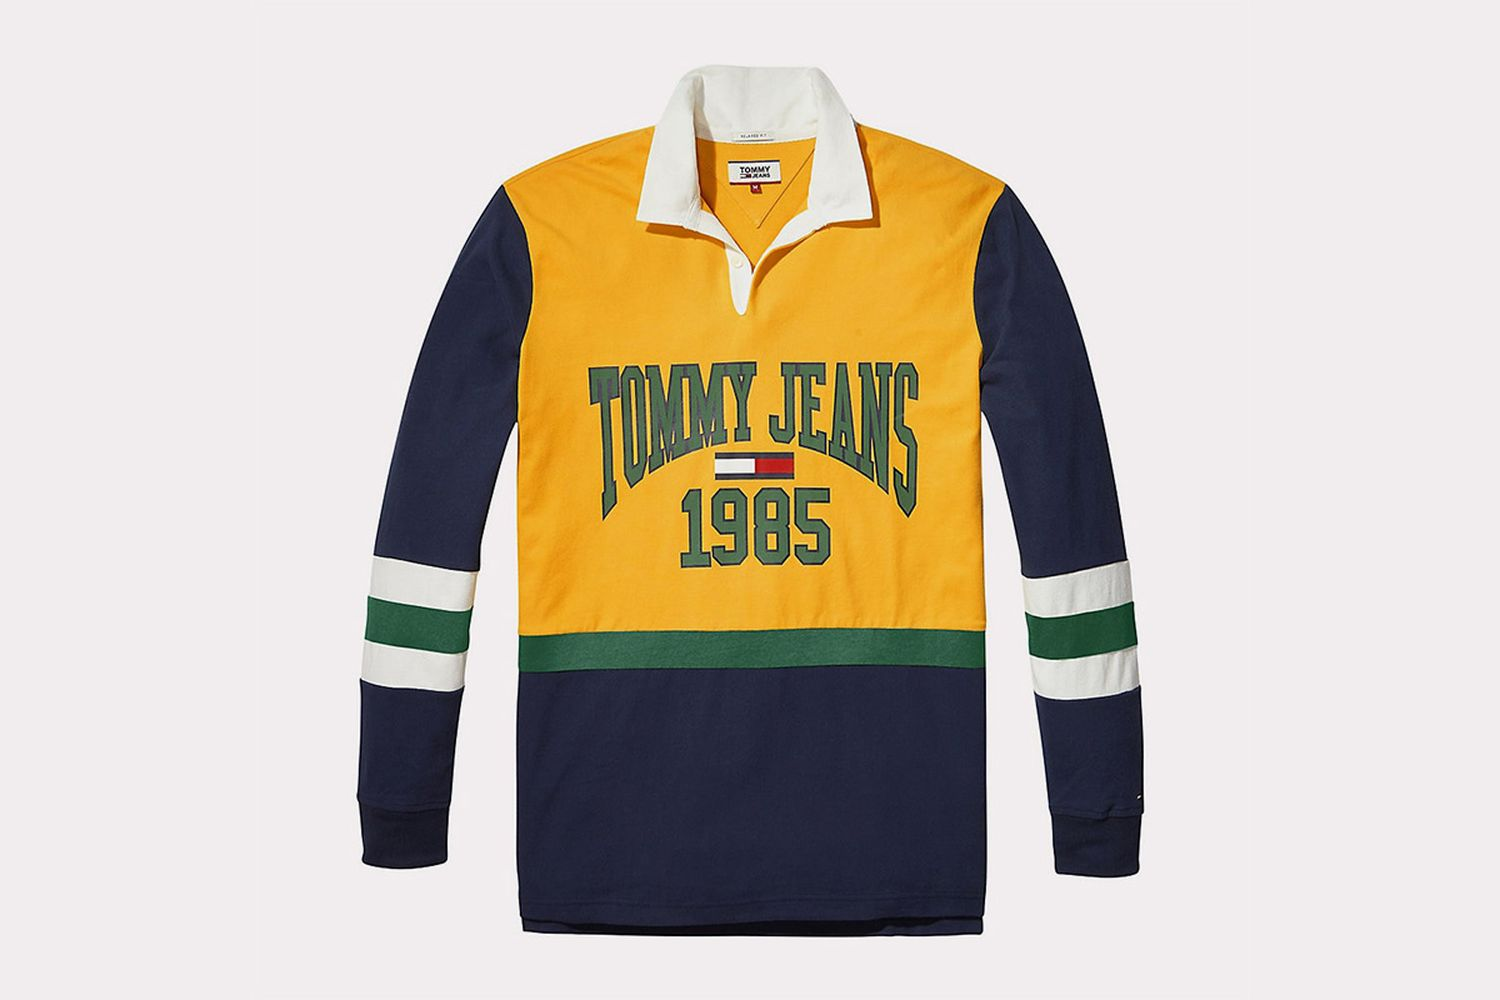 Retro-Inspired Rugby Shirt